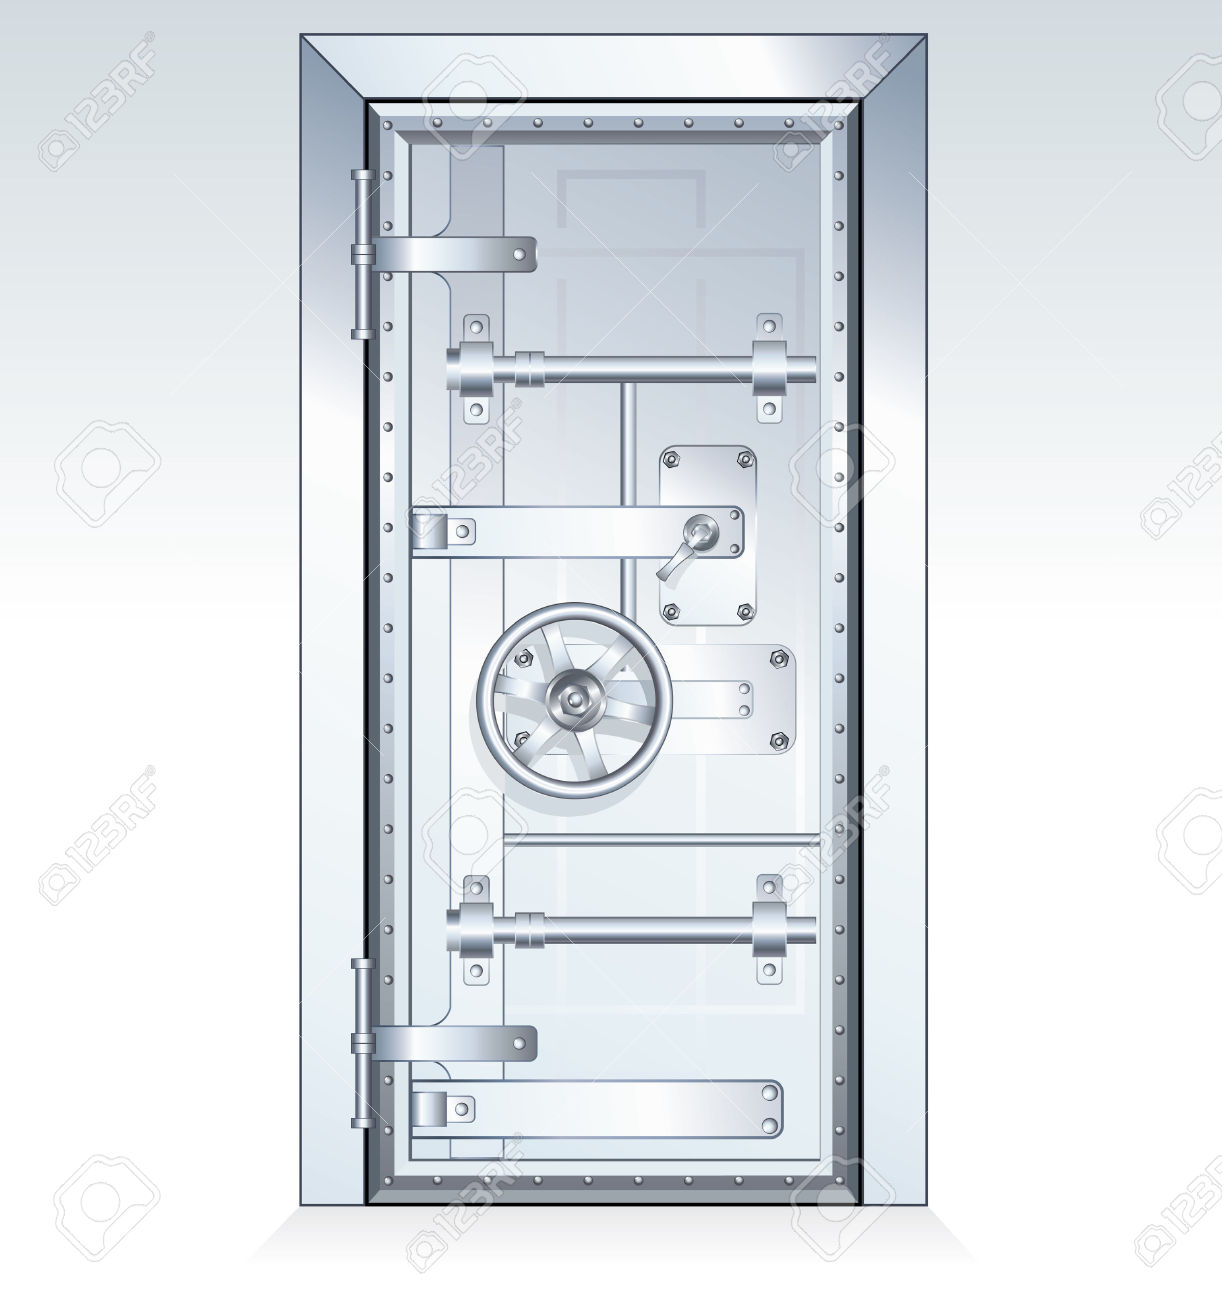 Bank vault door clipart image transparent library Bank Vault Door - Scalable Vector Illustration Royalty Free ... image transparent library